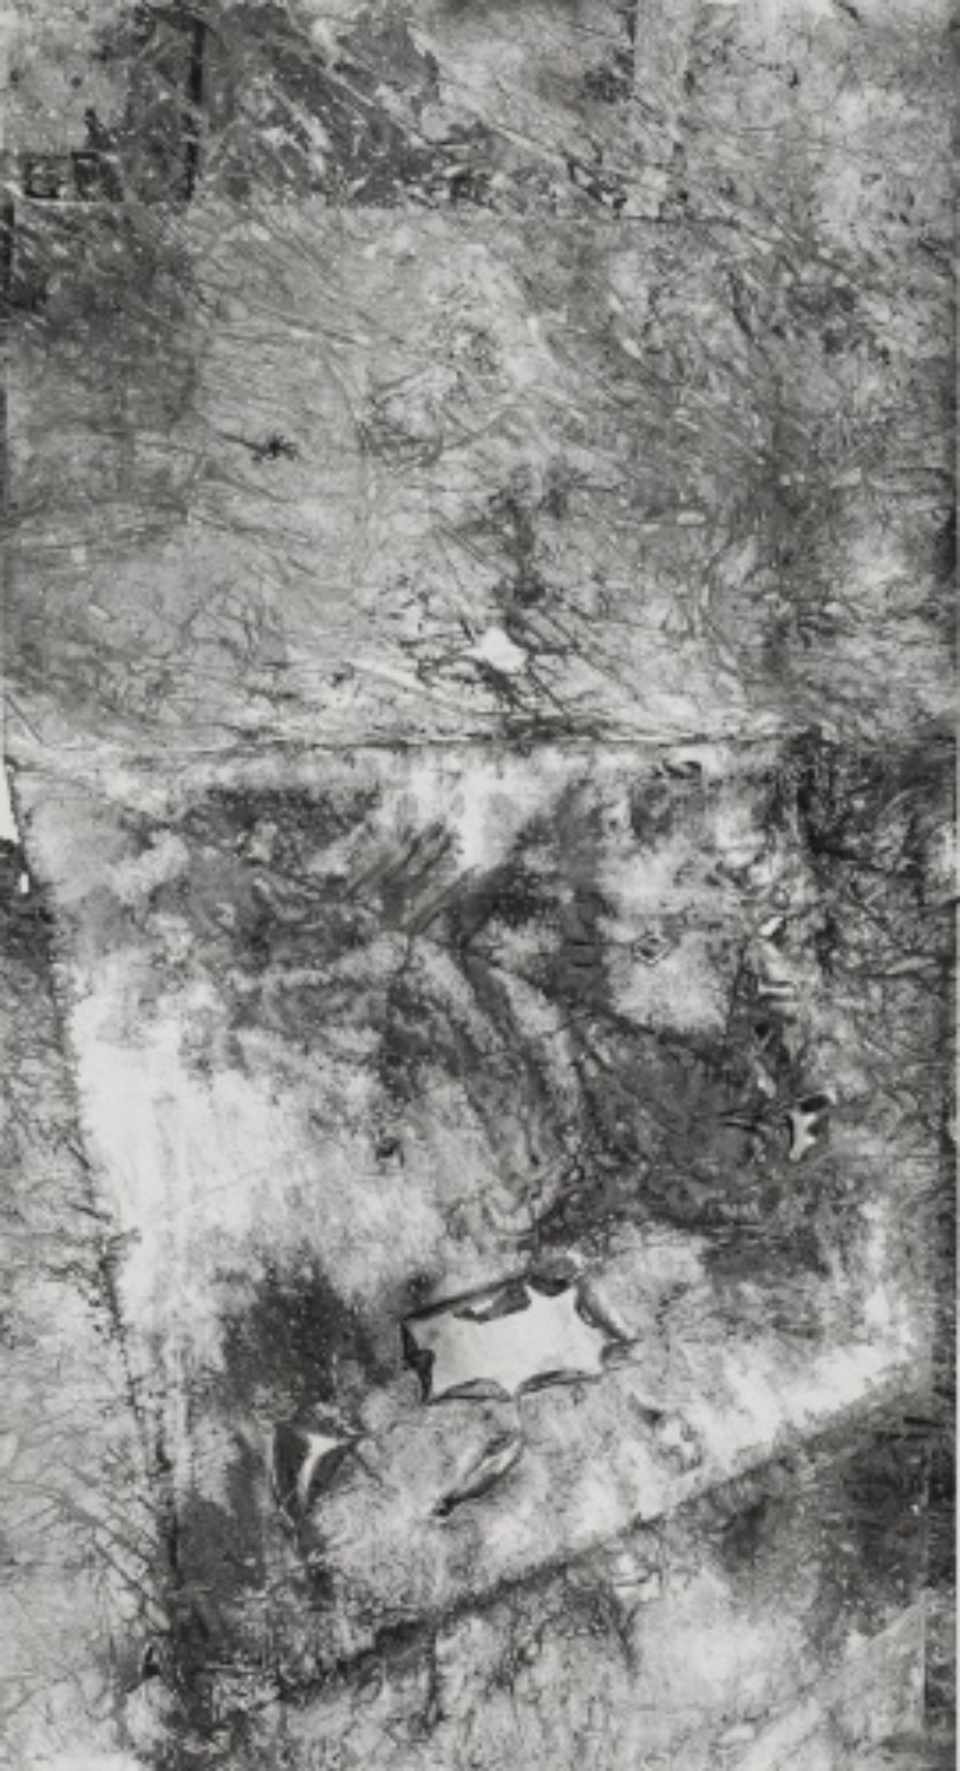 Zheng Chongbin: Dissolved Prime form ( b ) 2012 In, acrylics and wash on xuan paper L 92.5 cm X H 188 cm